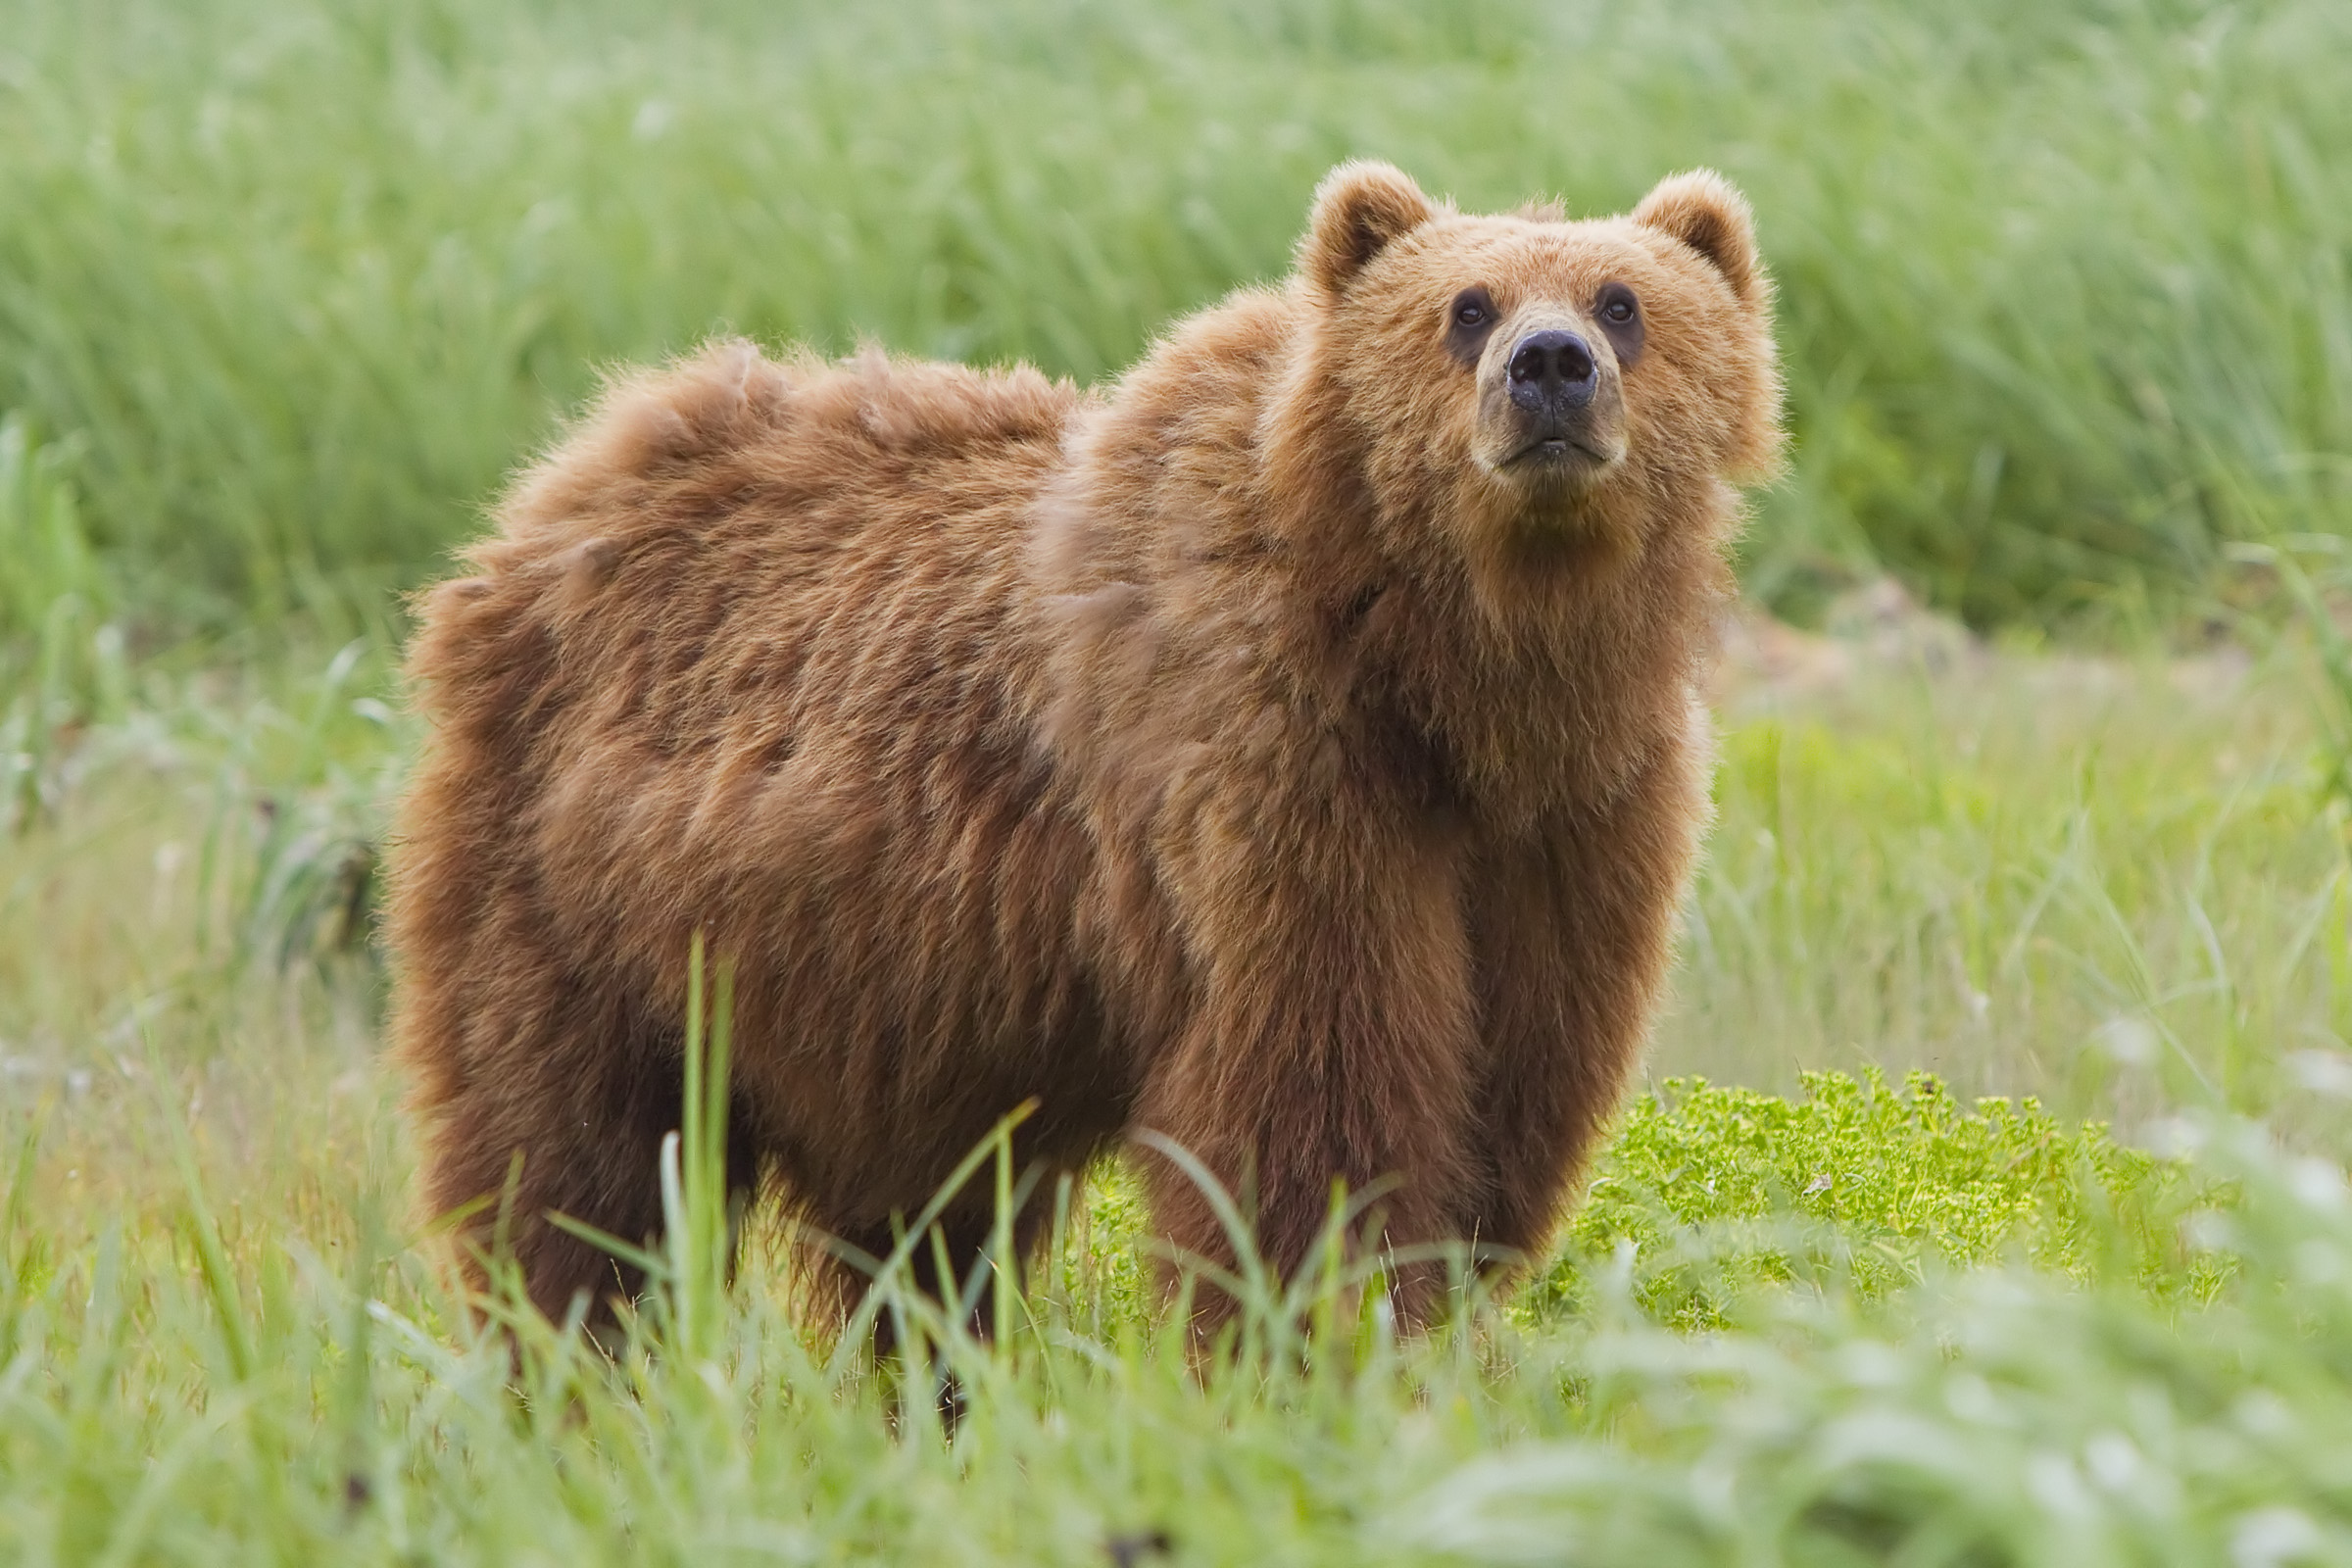 How long do brown bears live